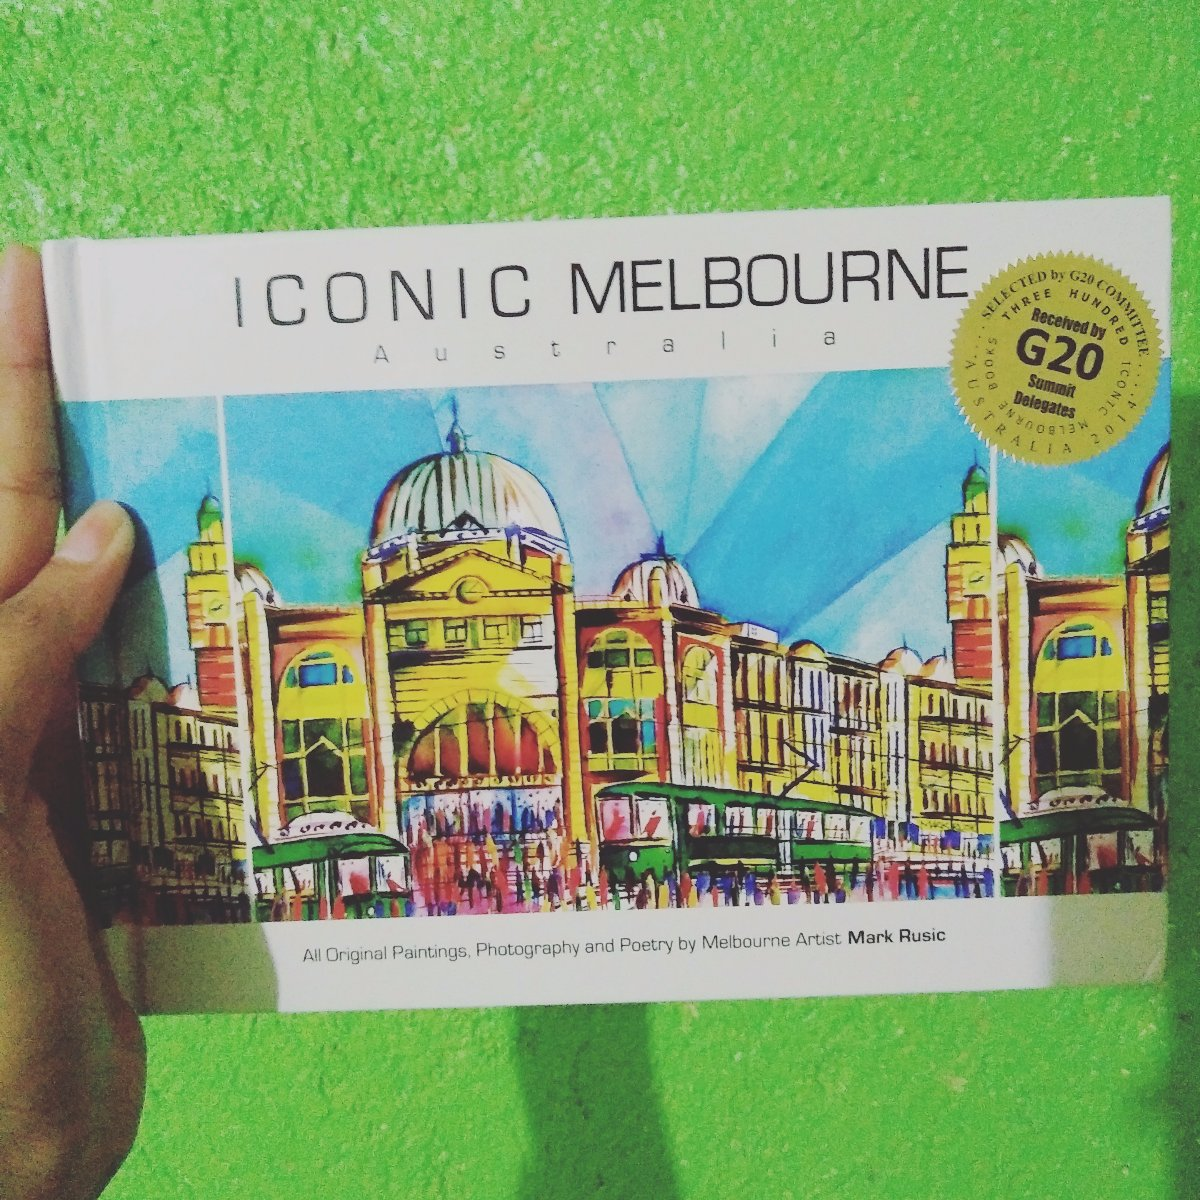 Thank you for this book from Melbourne Australia 😍